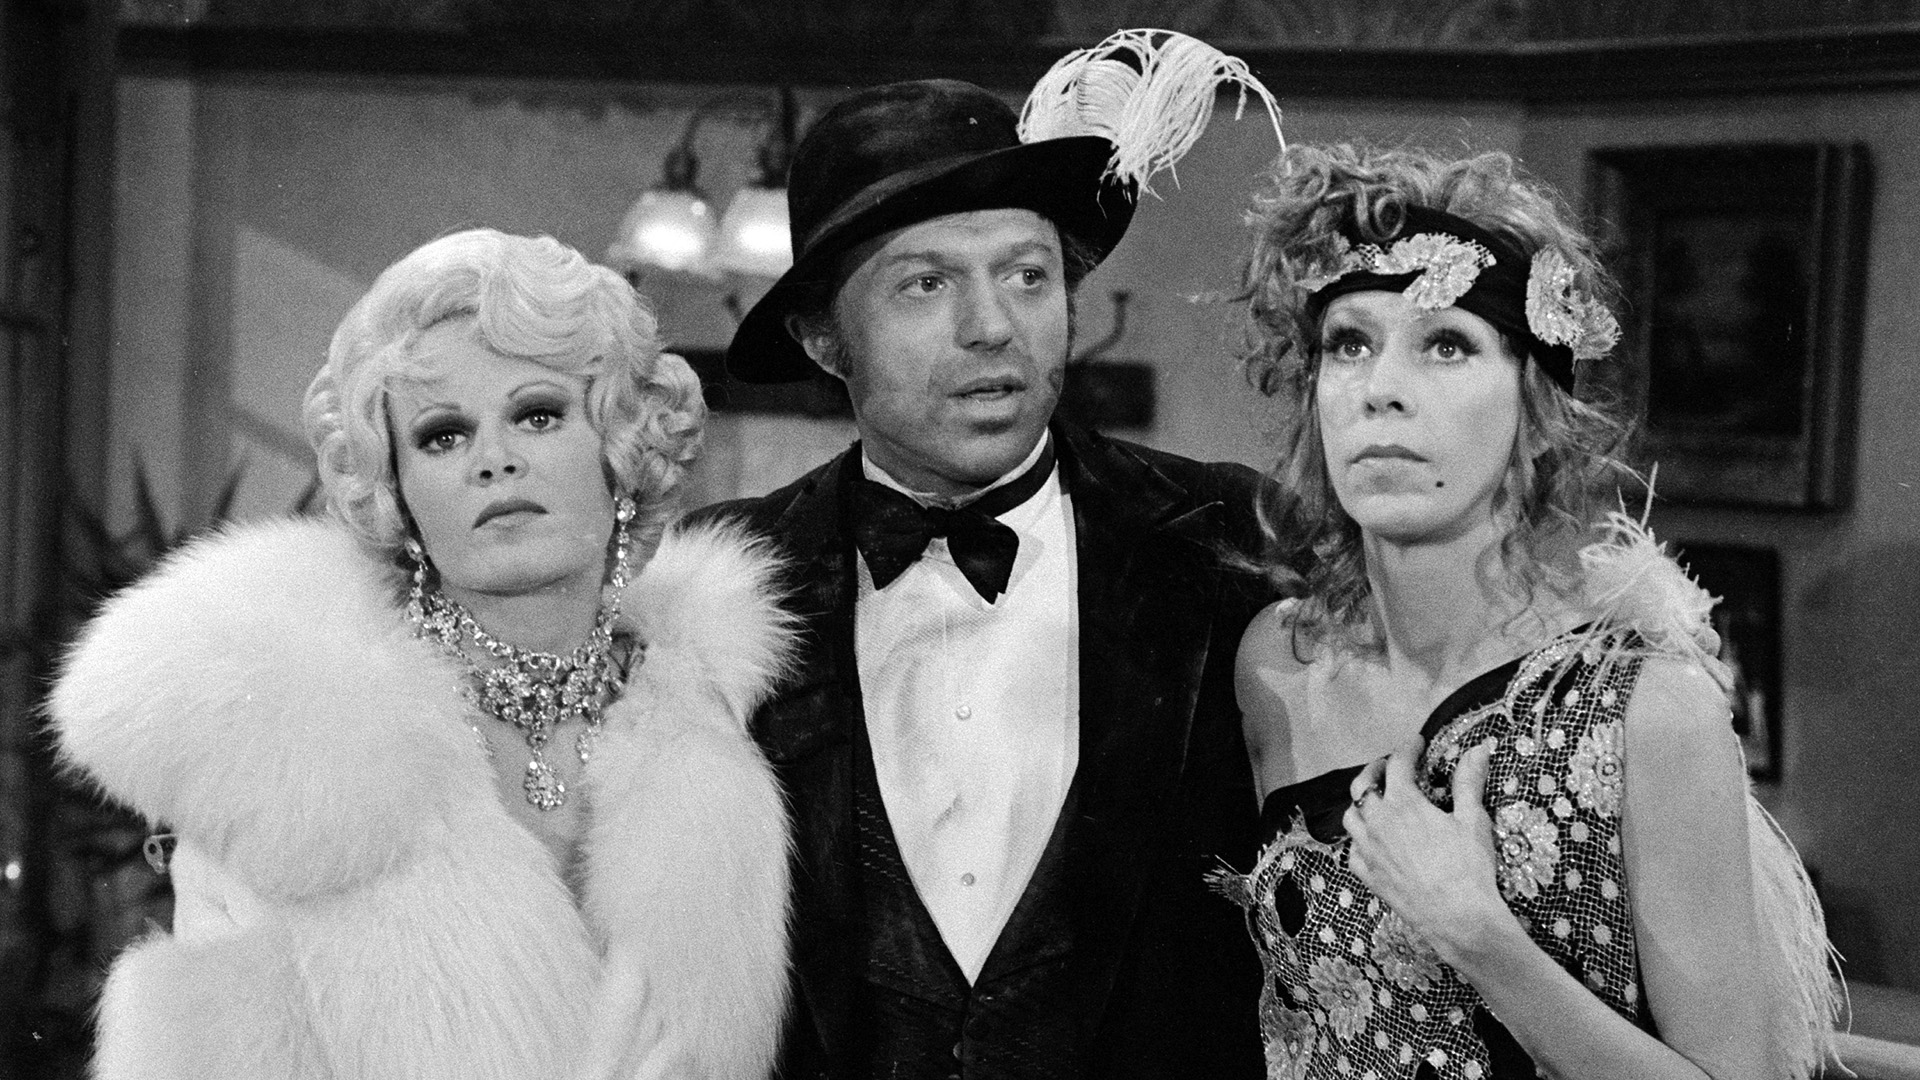 Carol Burnett with Sally Struthers and Steve Lawrence.